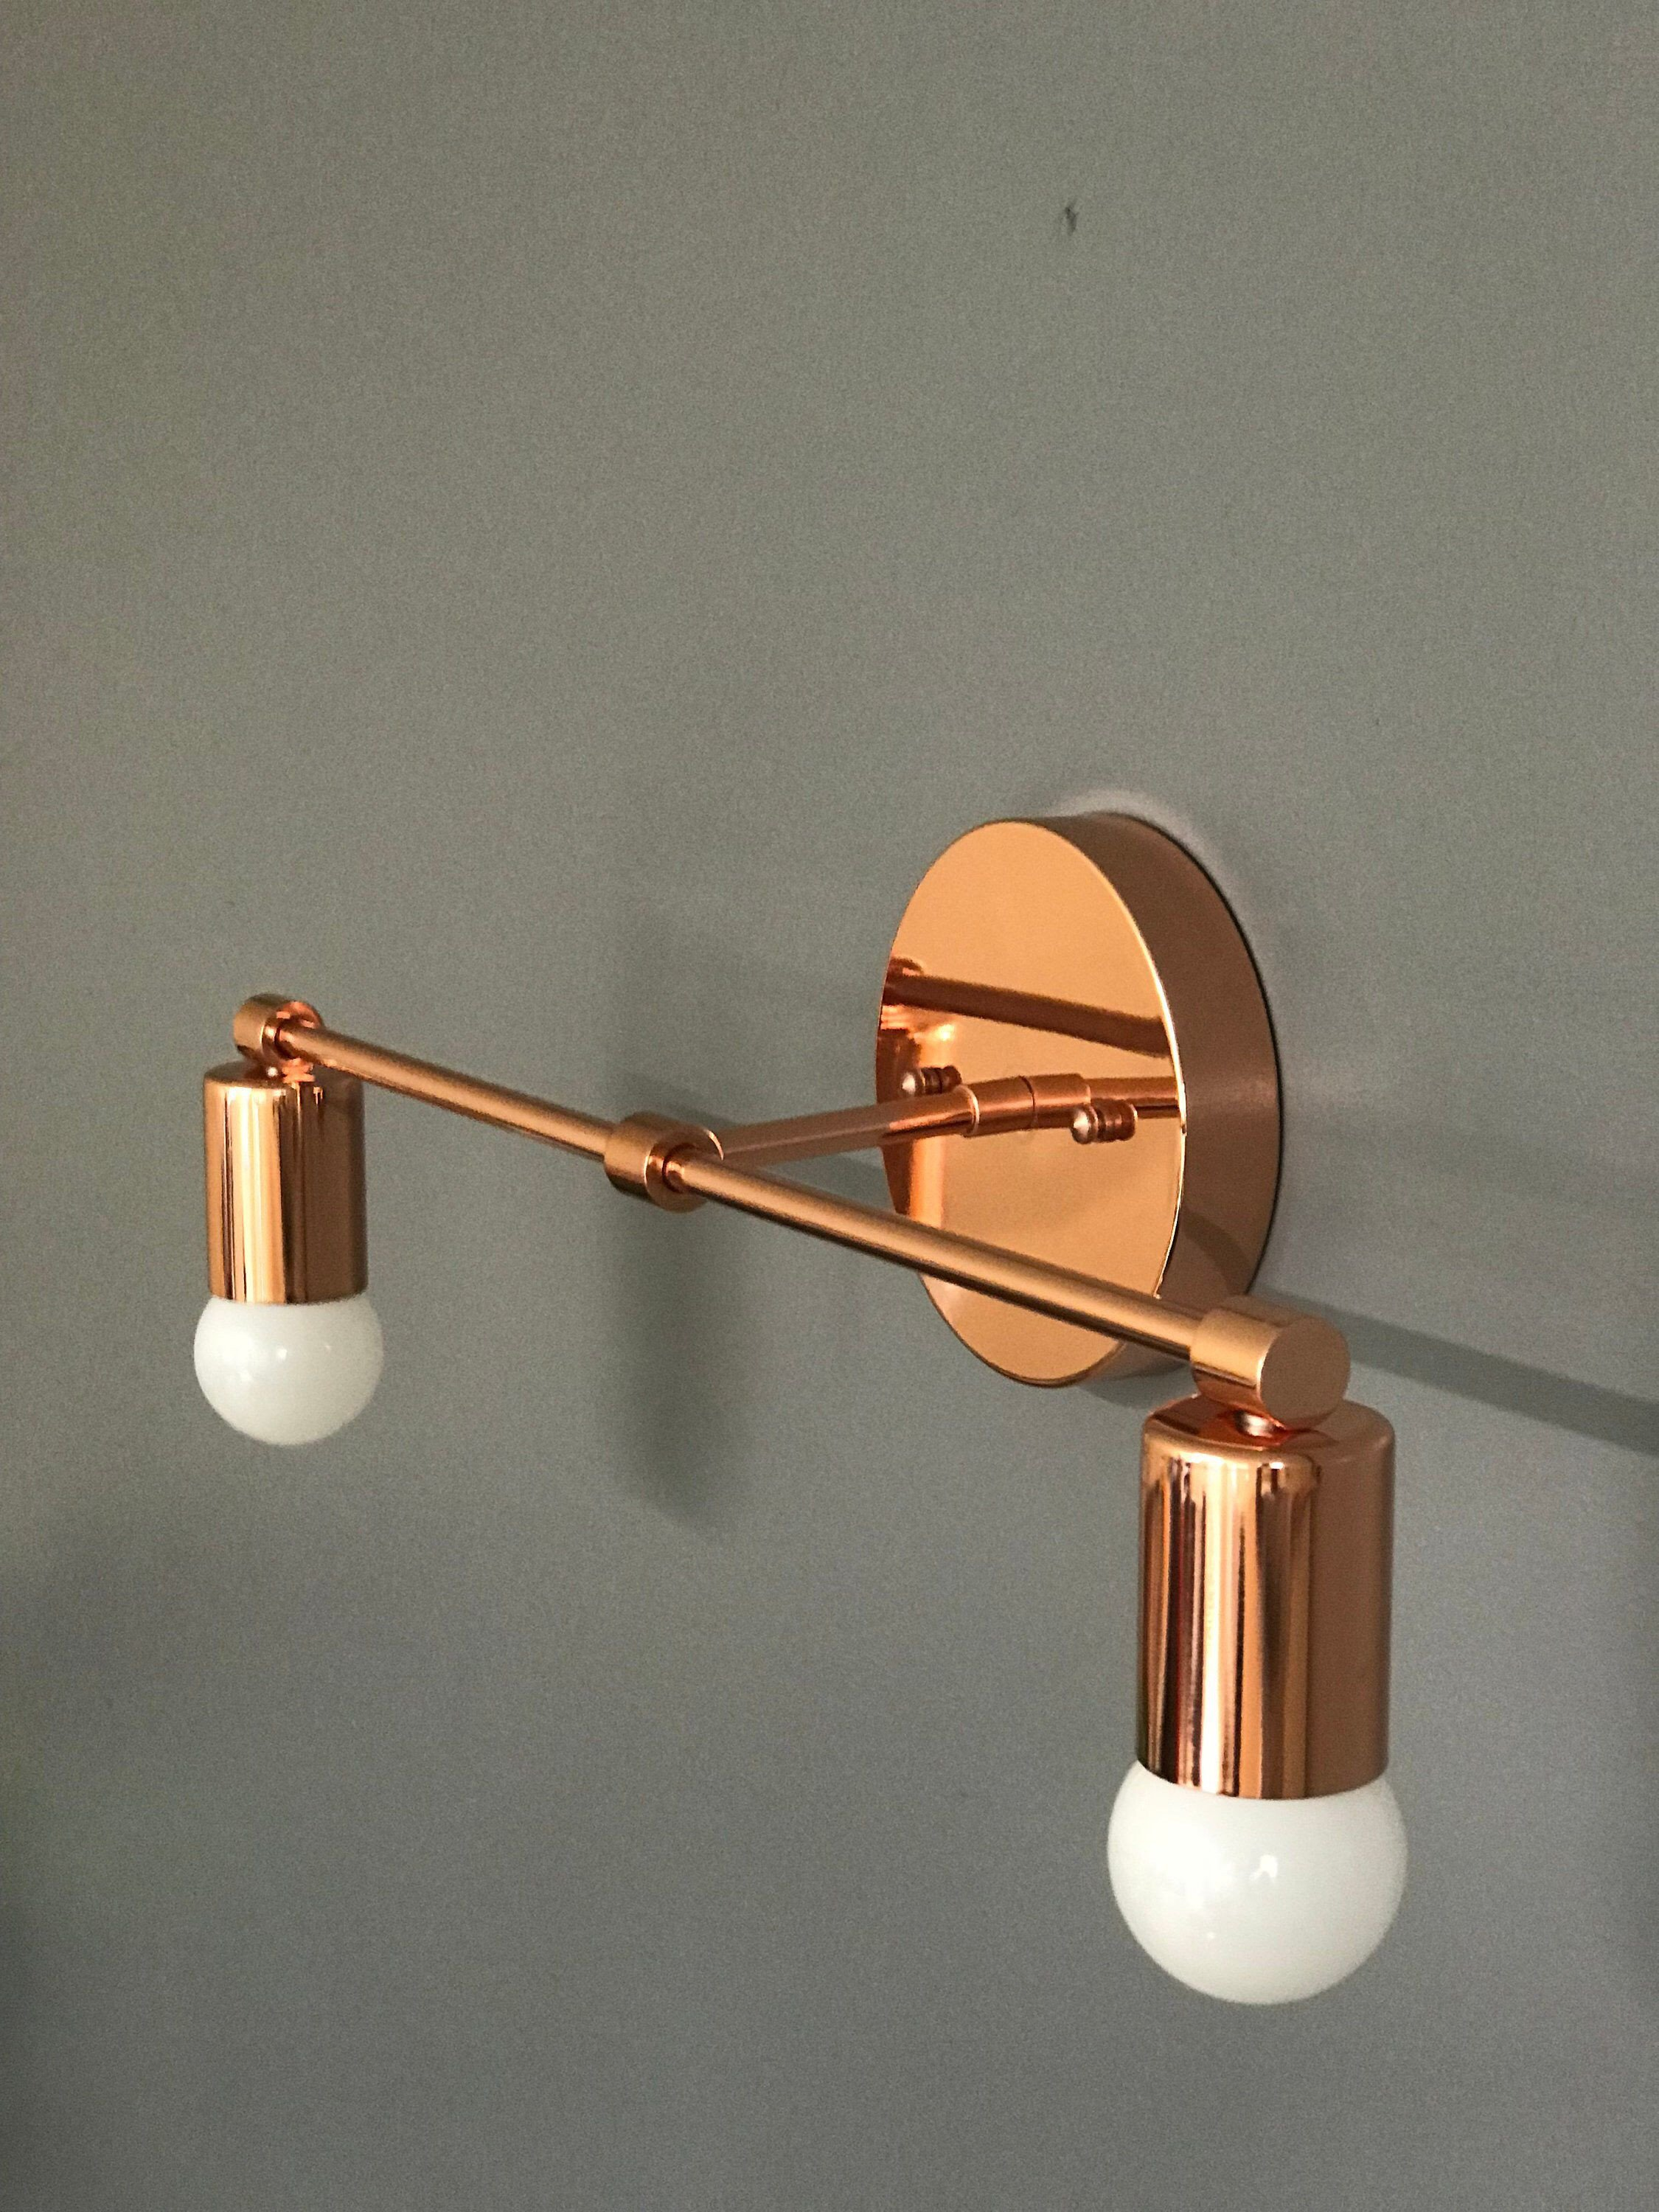 Bedroom Wall Light Fixtures Lovely Polished Copper Wall Sconce 2 Bulb Vanity Light Fixture